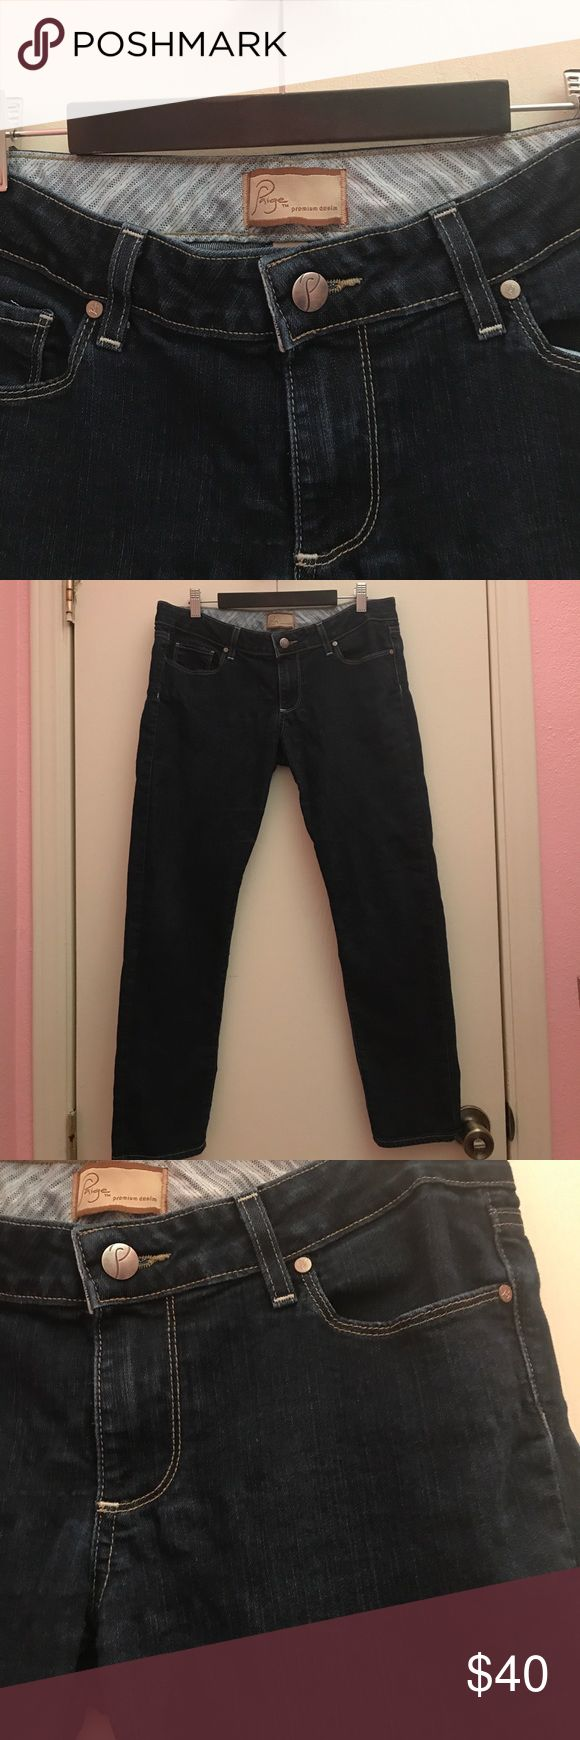 Paige premium denim bottoms Paige premium denim Roxbury Crop. Over all in excellent condition no stains or holes. There is some minor stretching near the crotch area, but it doesn't affect the overall wear. The inseam is approximately 26 inches. Paige Jeans Jeans Ankle & Cropped